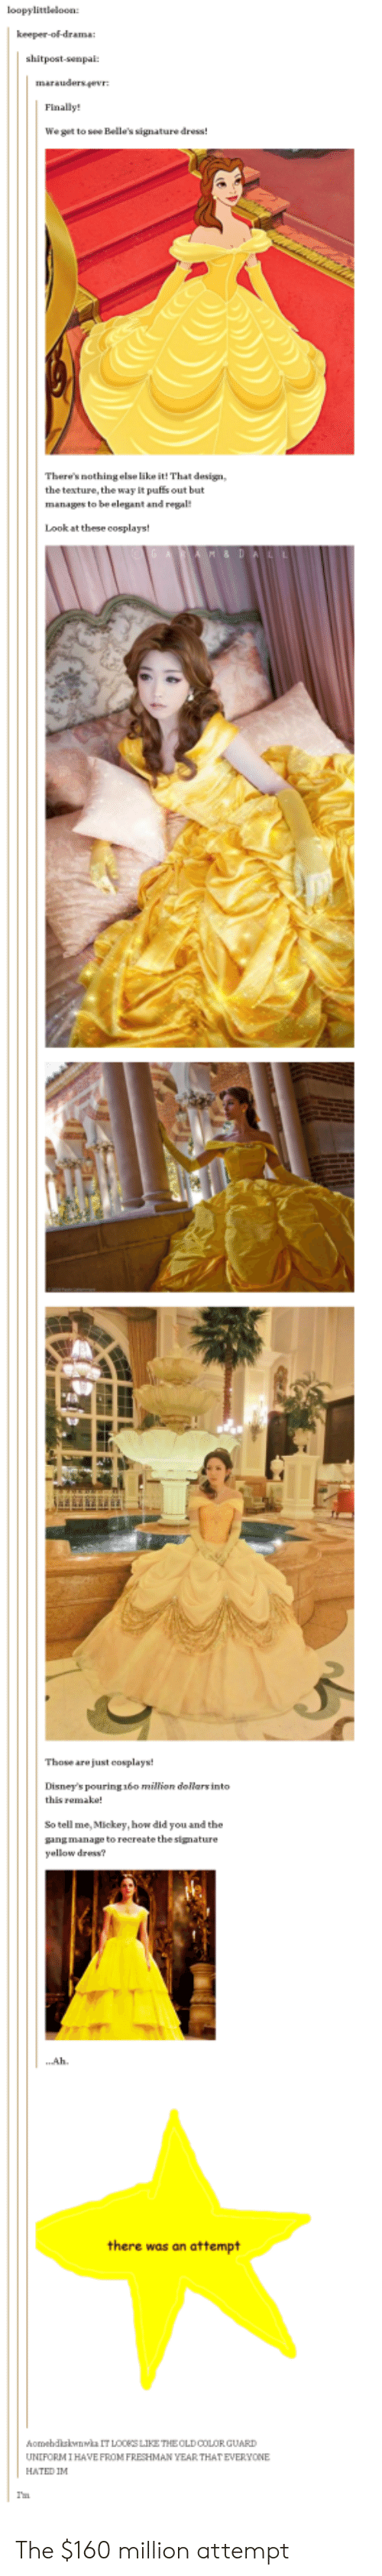 Gang, Dress, and Senpai: loopylittleloon  shitpost-senpai:  Finally!  We get to see Belle's signature dress!  Theres nothing else lake it!That design  the texture, the way It puffs out but  manages to be elegant and regal  Look at these cosplays  Those are just eosplays  Disney's pouring 16o milion doilars into  this remake  So tell me, Mickey, how did you and the  gang manage to recreate the signature  yellow dress?  ..Ah  there was an attempt  homebdkzkwnwka IT LOORS LIKE THEOLD COLOR GUARD  UNIFORMIHAVE FROM FRESHMAN YEAR THAT EVERYONE  HATED IM  Ia The $160 million attempt